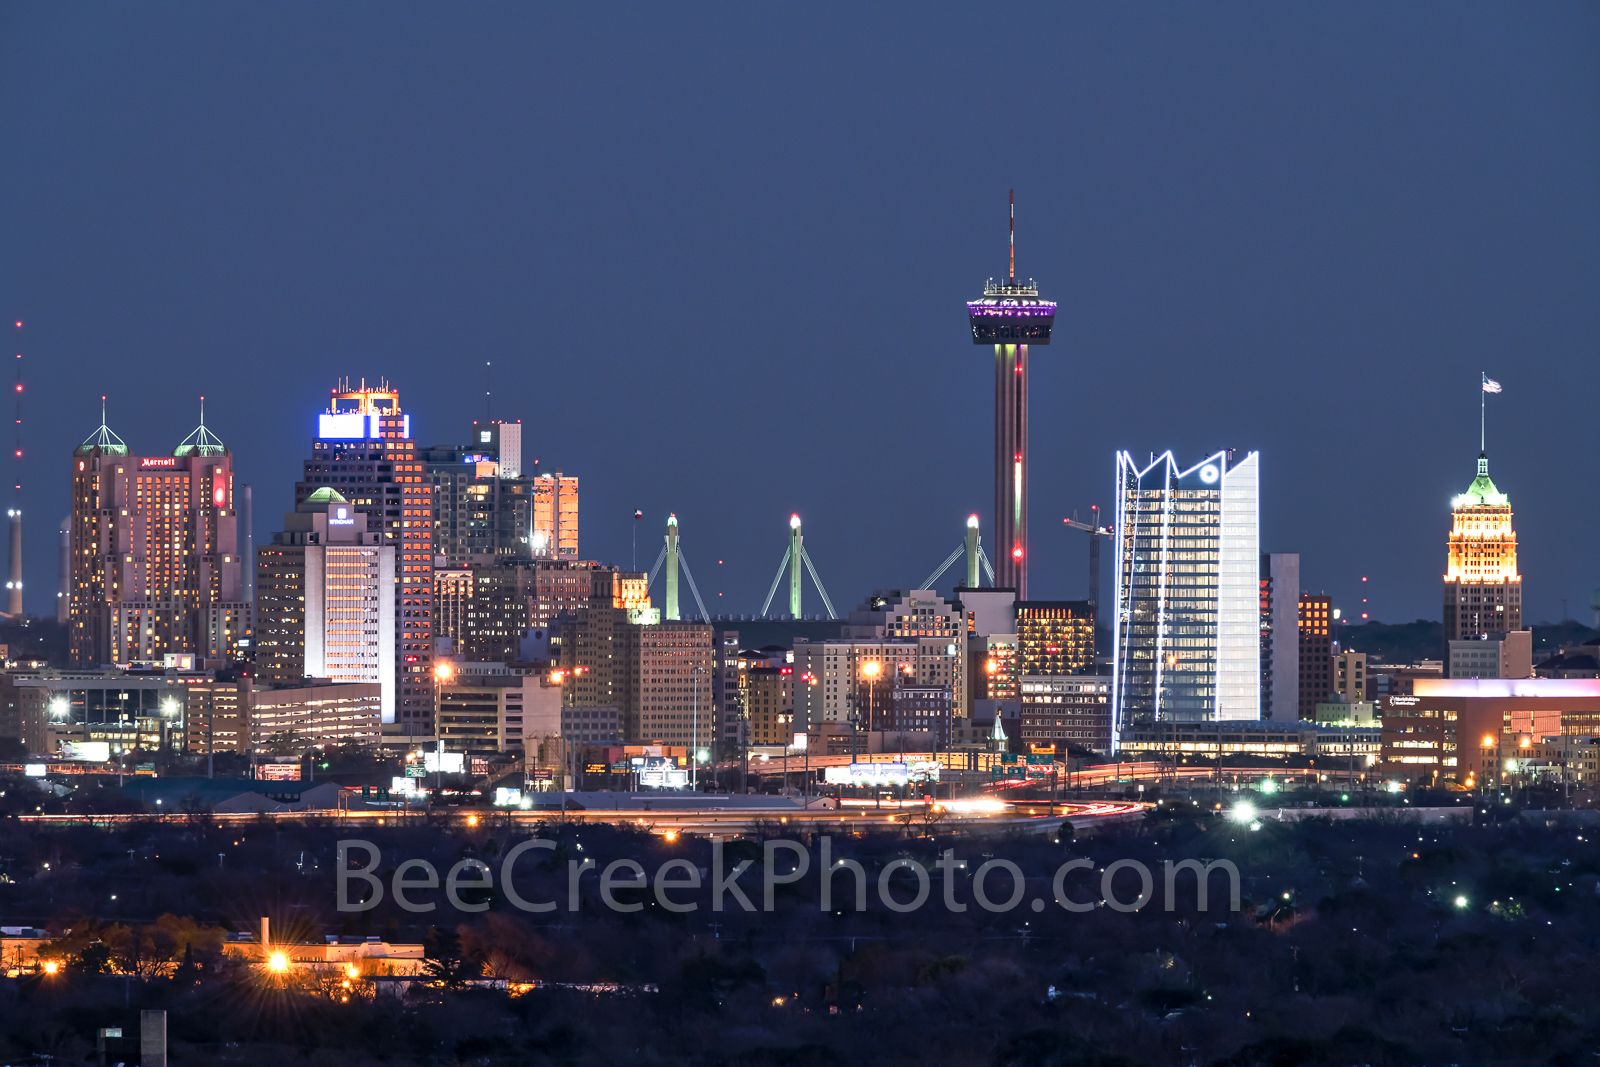 San Antonio Skyline Night, san antonio, skyline, night, san antonio skyline pictures, images of san antonio,  Frost, landmarks, Tower of Americas, Life Tower, texas hill country, riverwalk, alamo, mis, photo